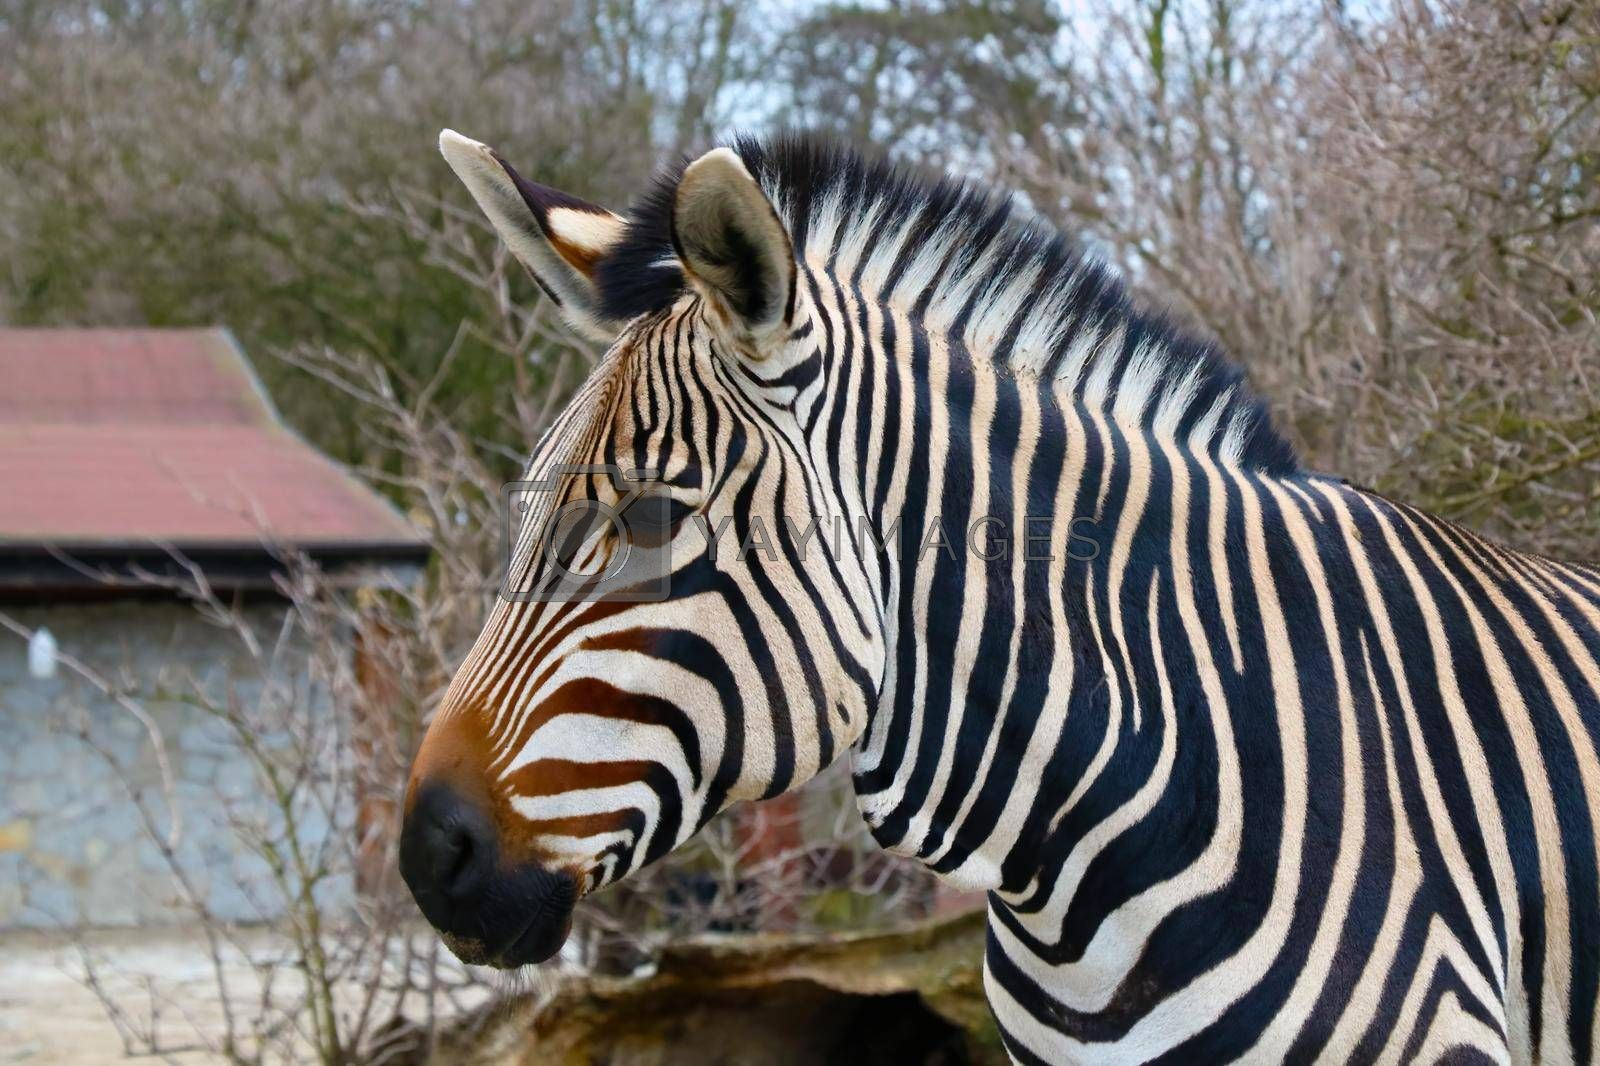 Royalty free image of Close-up on a zebra in the animal park. by kip02kas